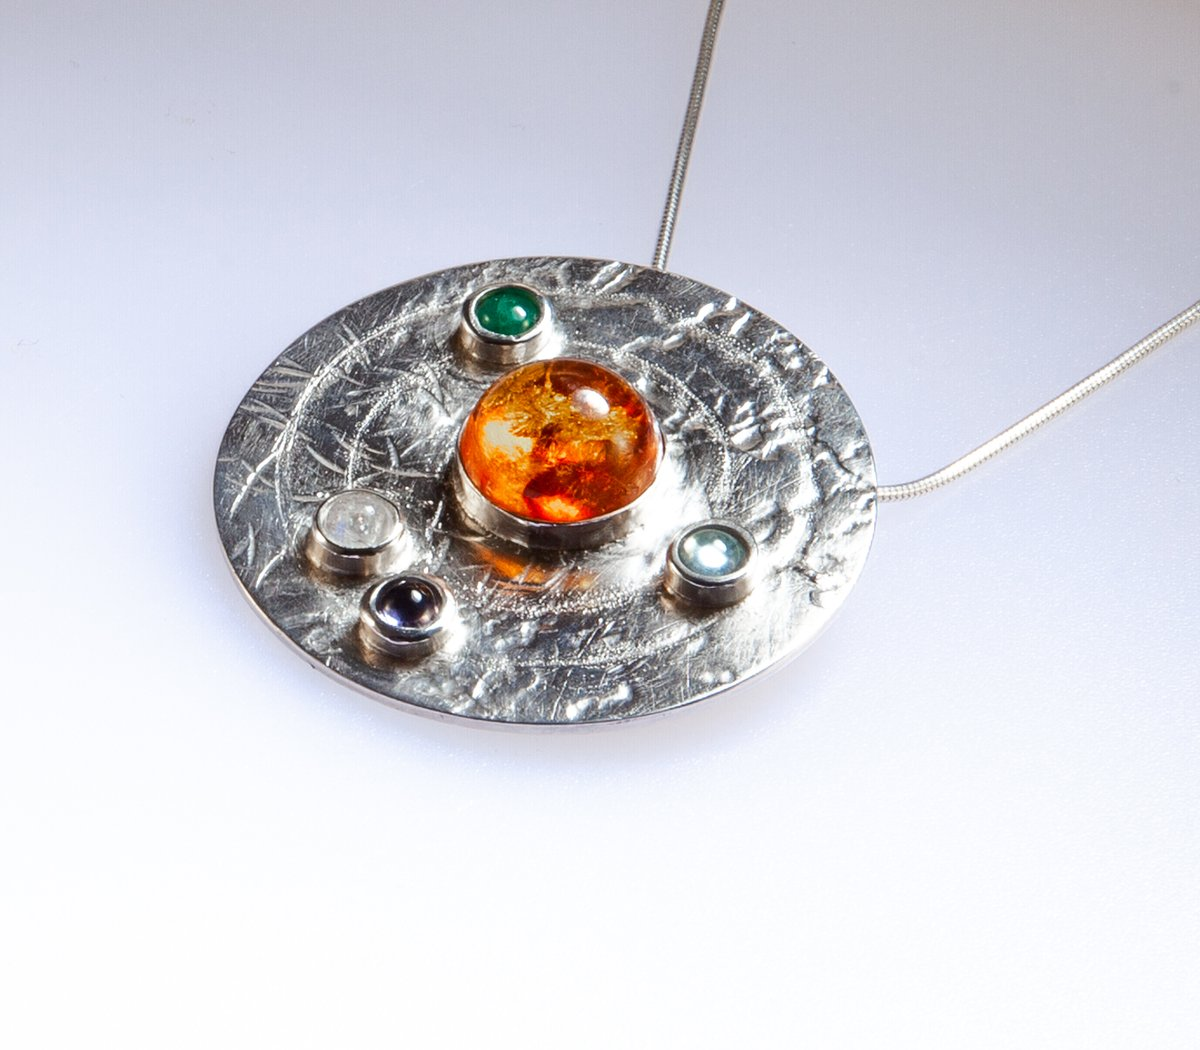 Stunning Round Sterling Silver pendant with Amber, Moonstone, Kyanite, Emerald and Amethyst Stones. Visit https://t.co/OUco8GIlCi for #sterlingsilver #Margriff #London #londonislovinit #earlybiz #sterlingsilver #MondayMotivation #mondaythoughts #MondayVibes https://t.co/j29f7gxLNS